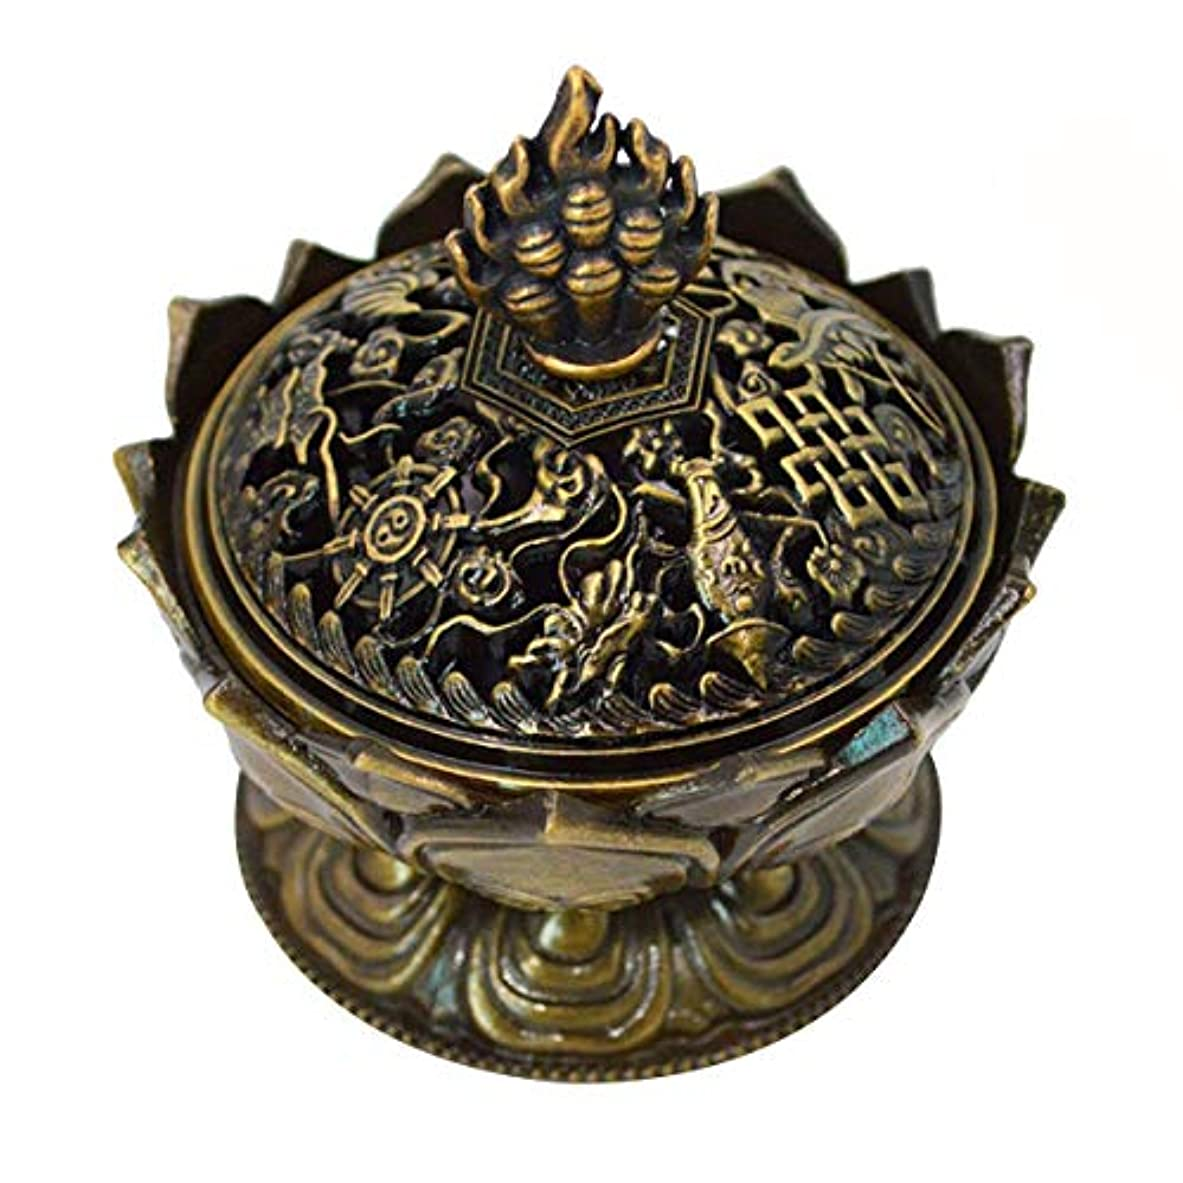 ねばねばご意見プログラム(Bronze) - Buddha Lotus Flower Incense Burner Alloy Metal Incense Holder Censer Creative Christmas Gifts (Bronze)